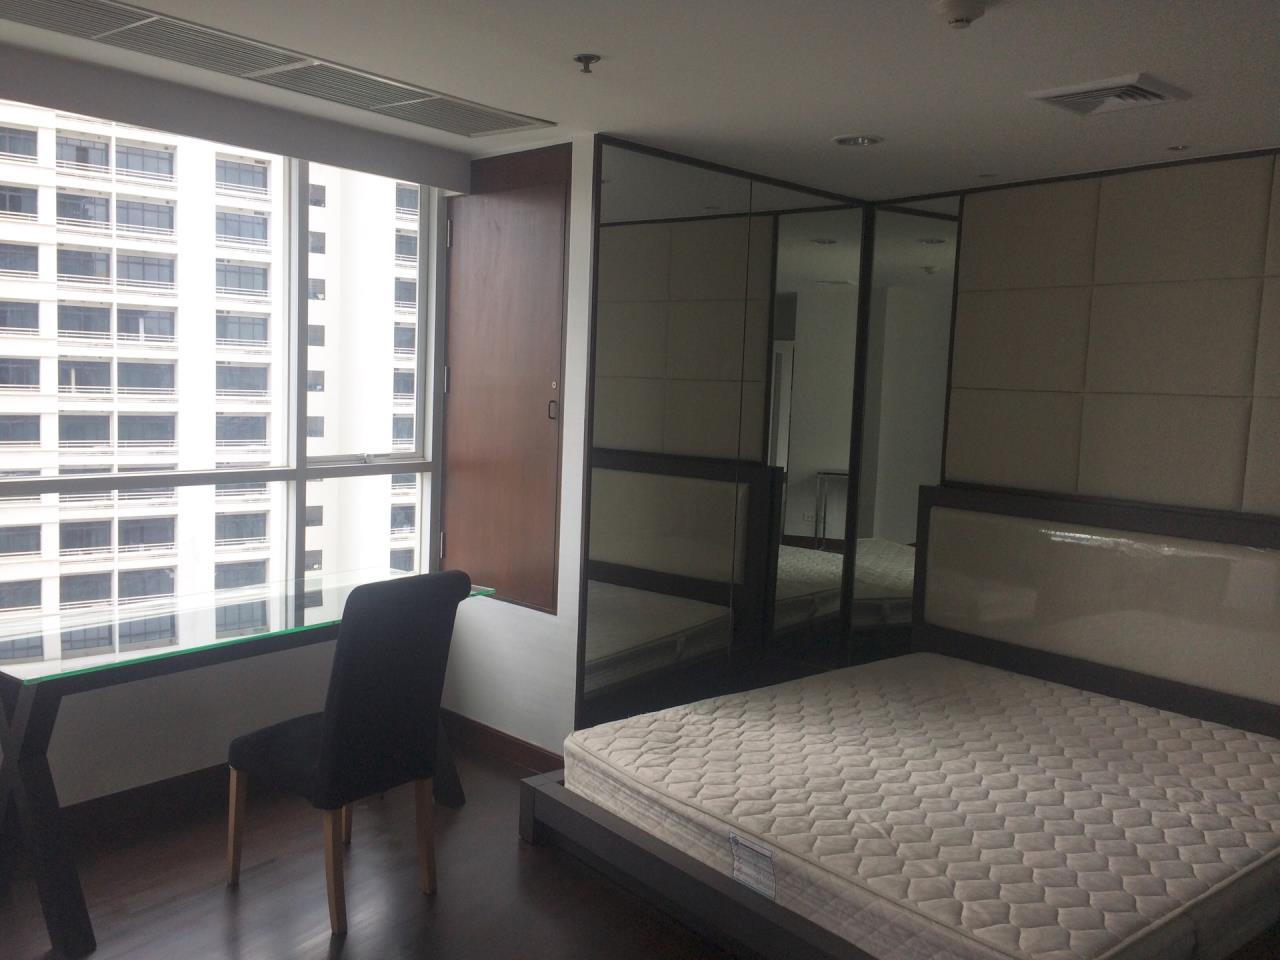 Quality Life Property Agency's 2-BEDROOM CONDO FOR RENT IN URBANA LANGSUAN 9 FOOR 1